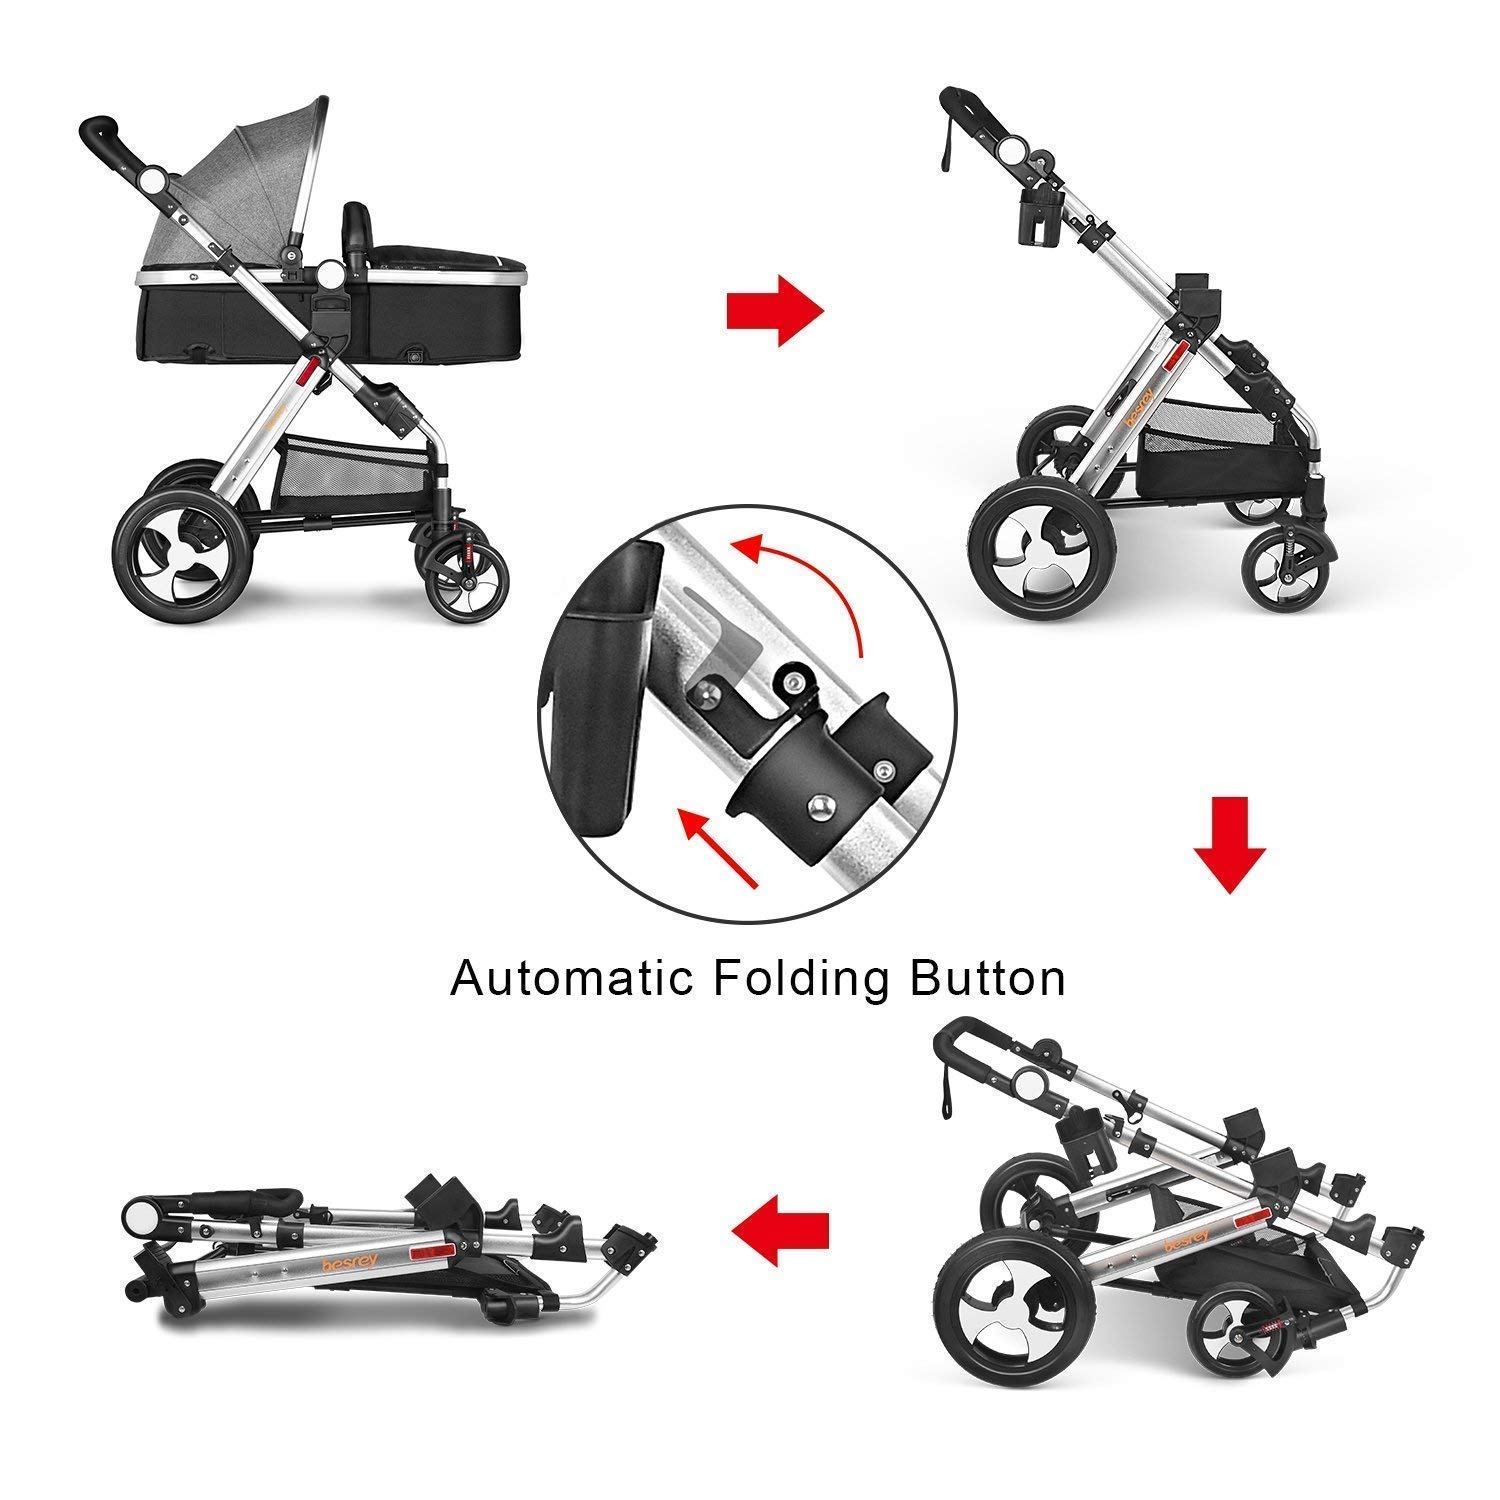 Grey Besrey Pushchair 3 in 1 Baby Stroller Travel System Foldable Infant Buggy with Car seat